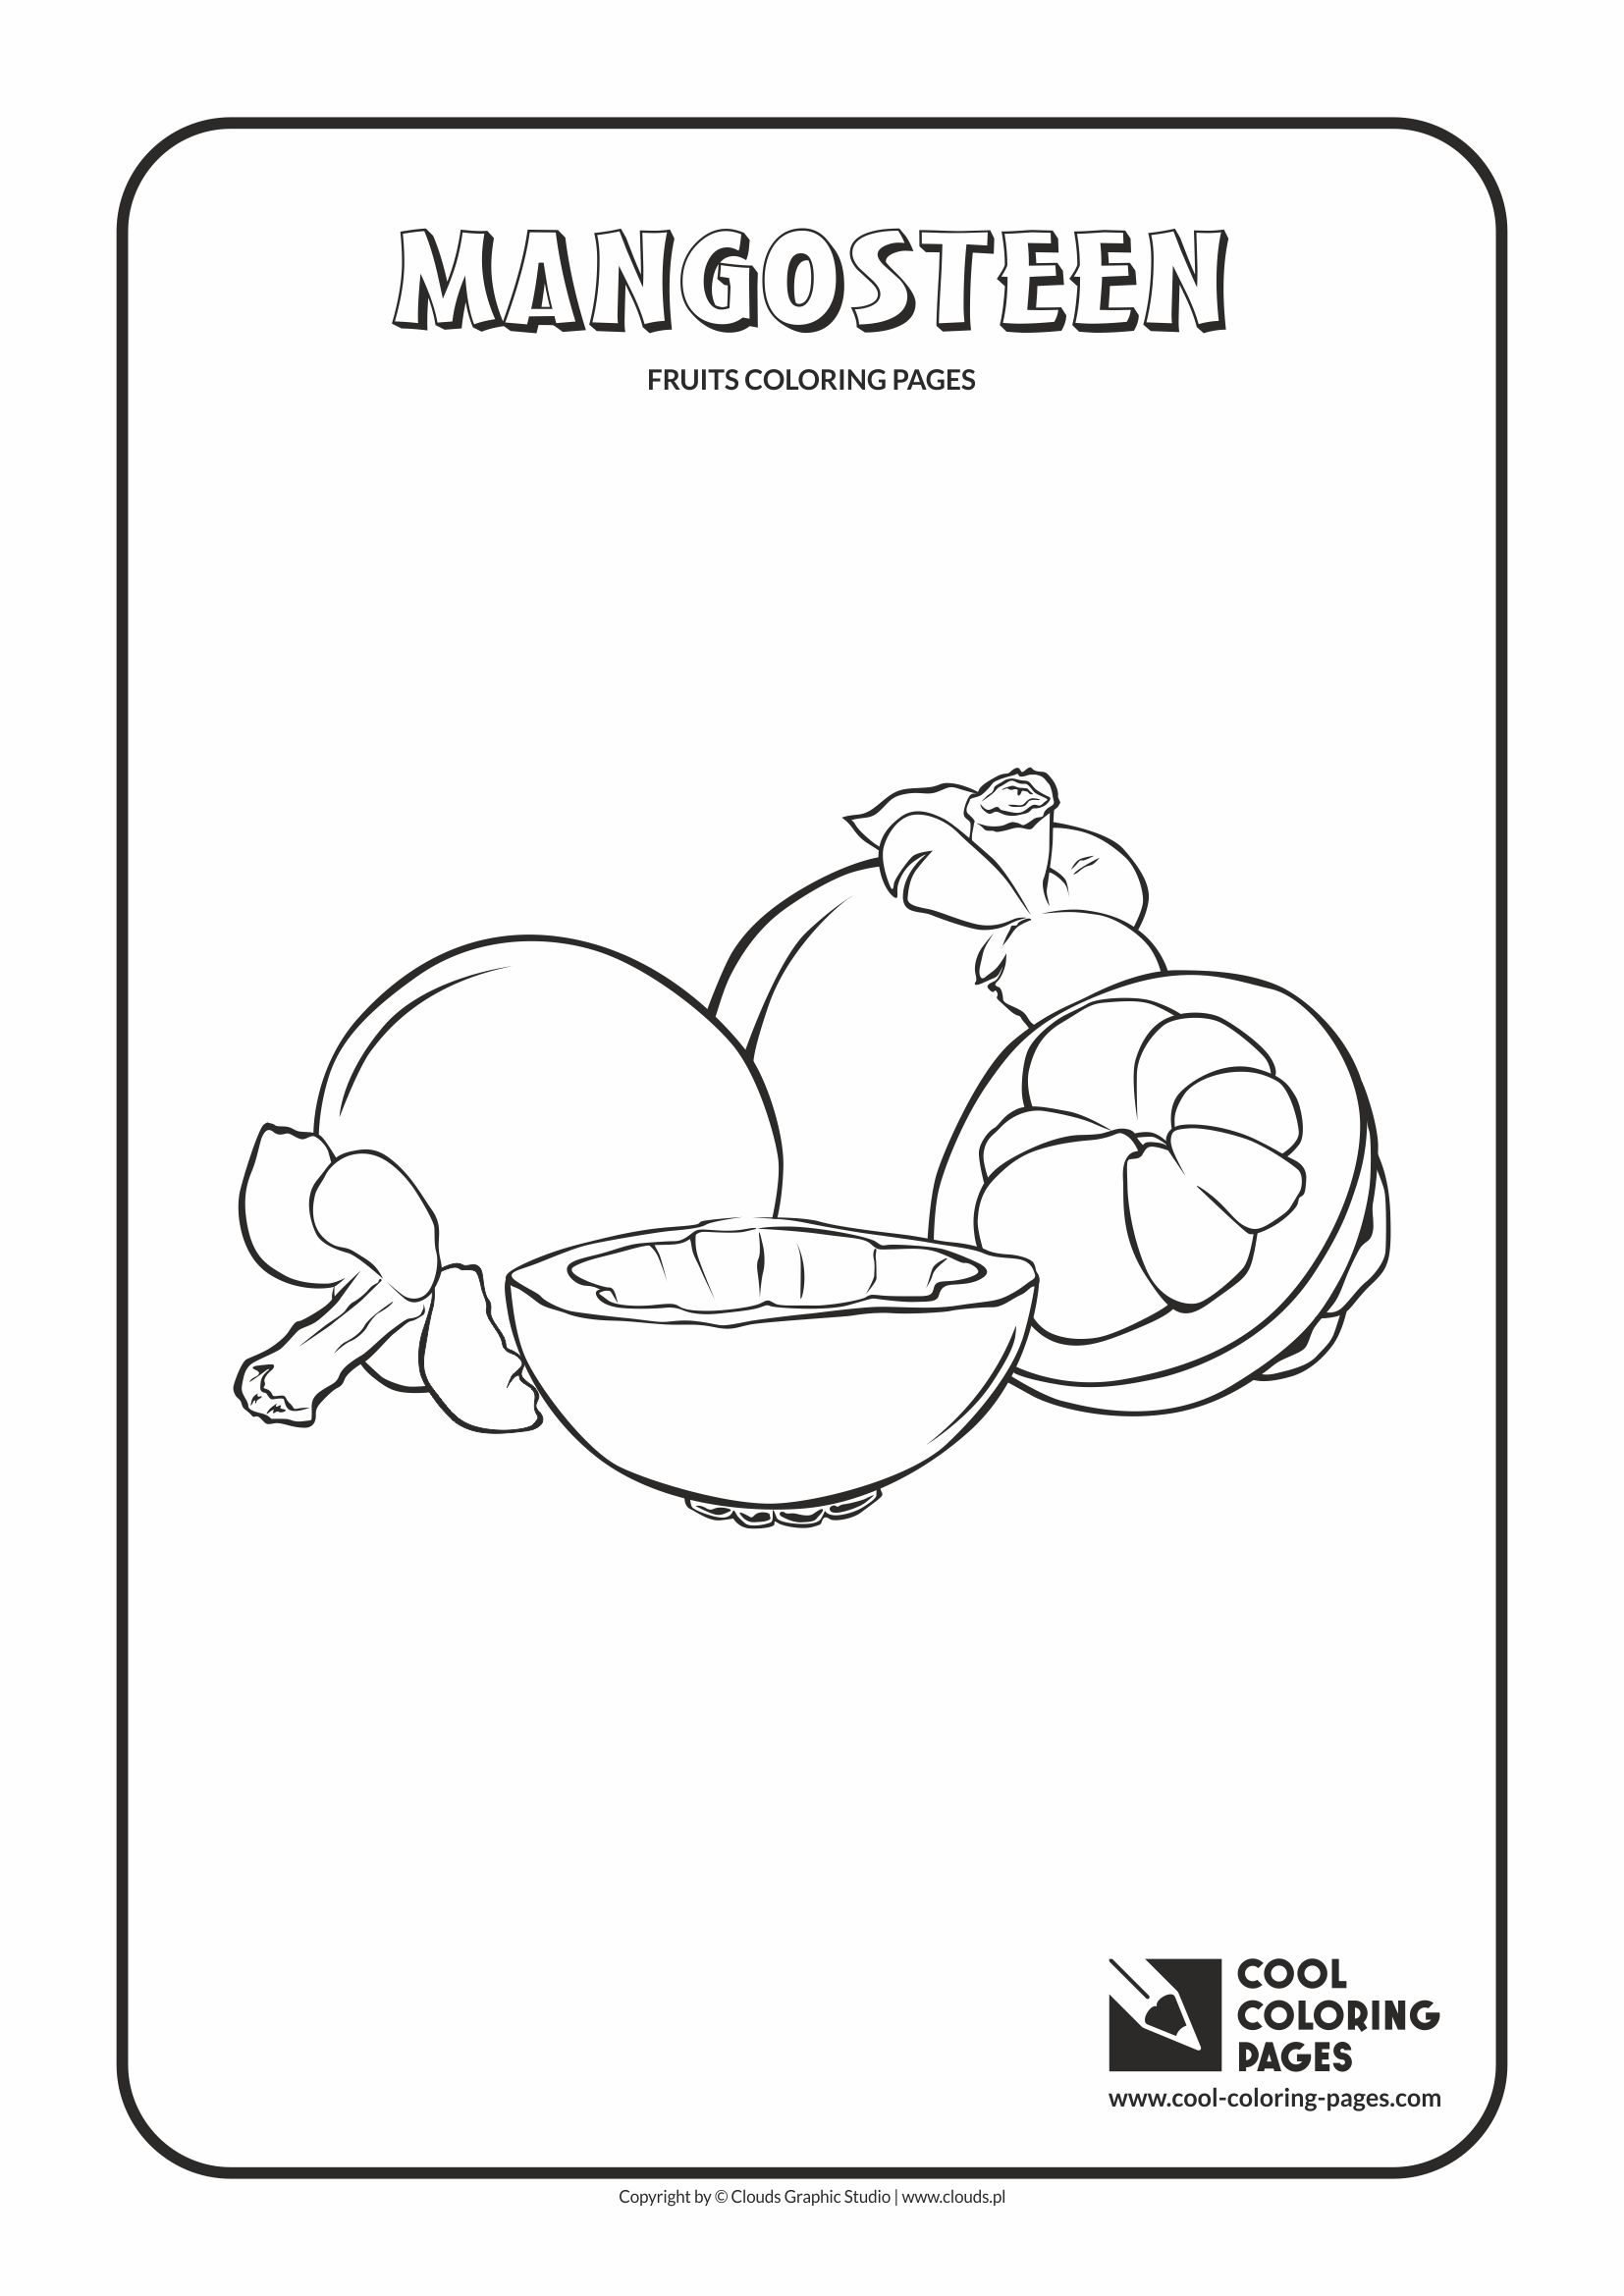 Cool Coloring Pages - Plants / Mangosteen / Coloring page with mangosteen